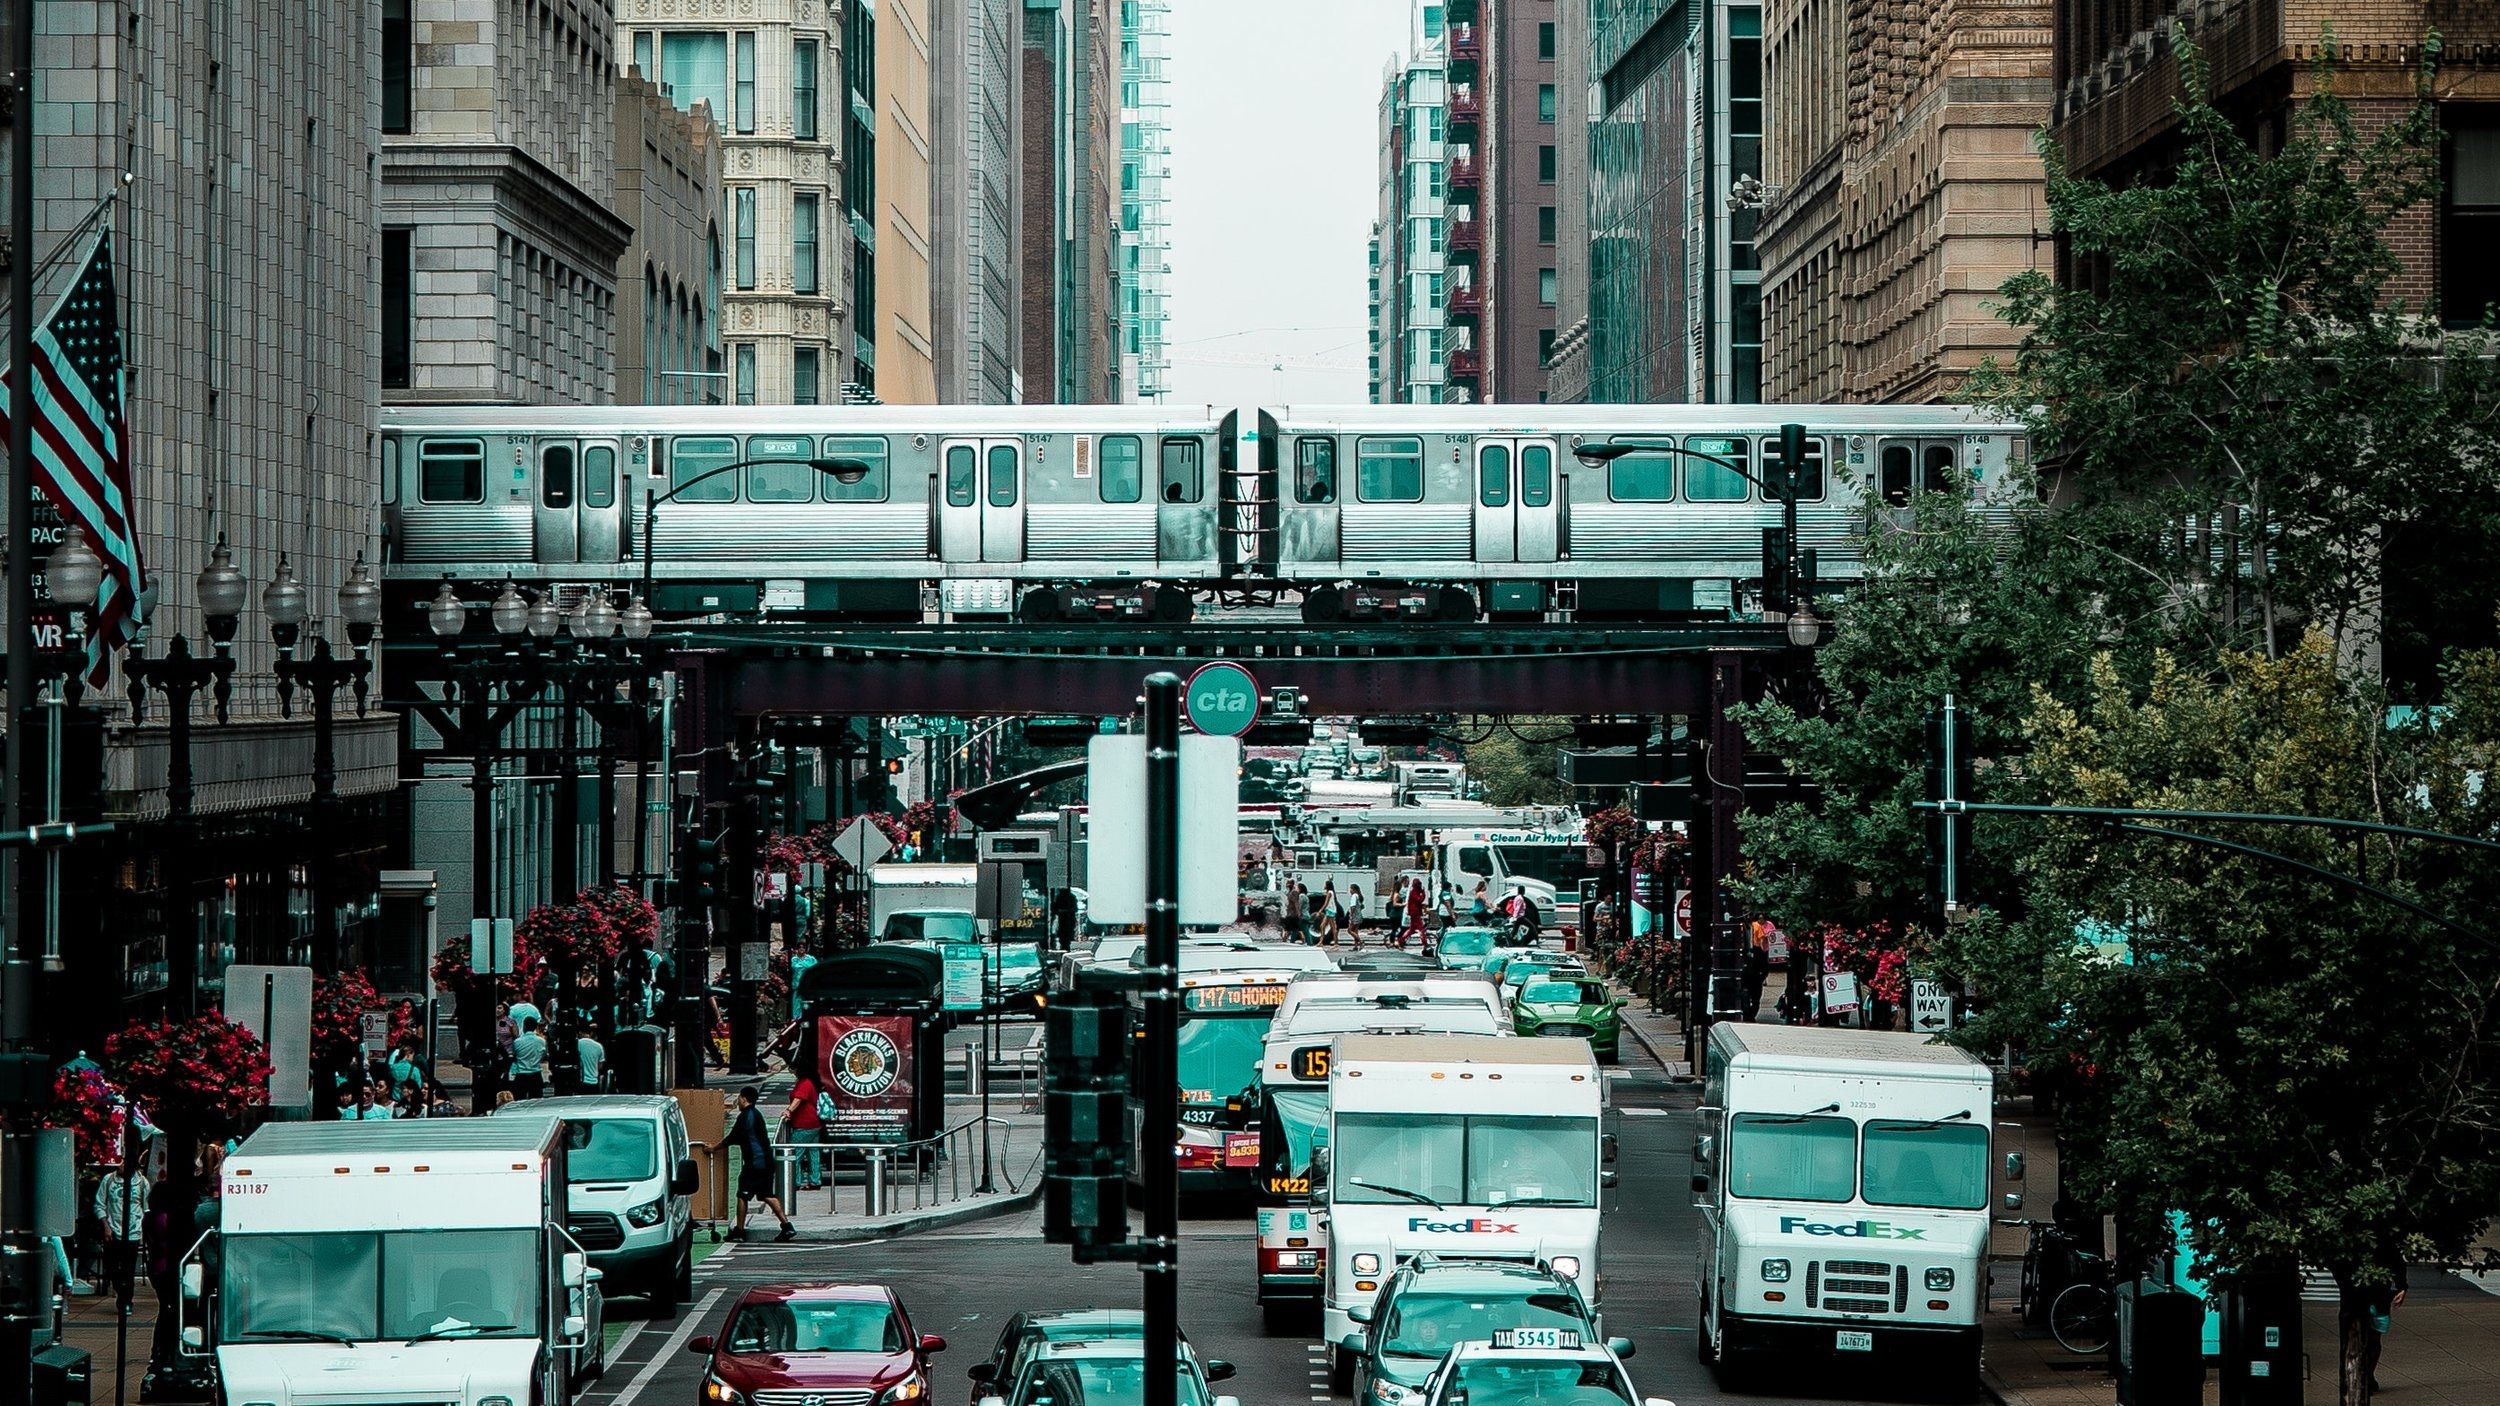 The L runs above city streets in downtown Chicago.